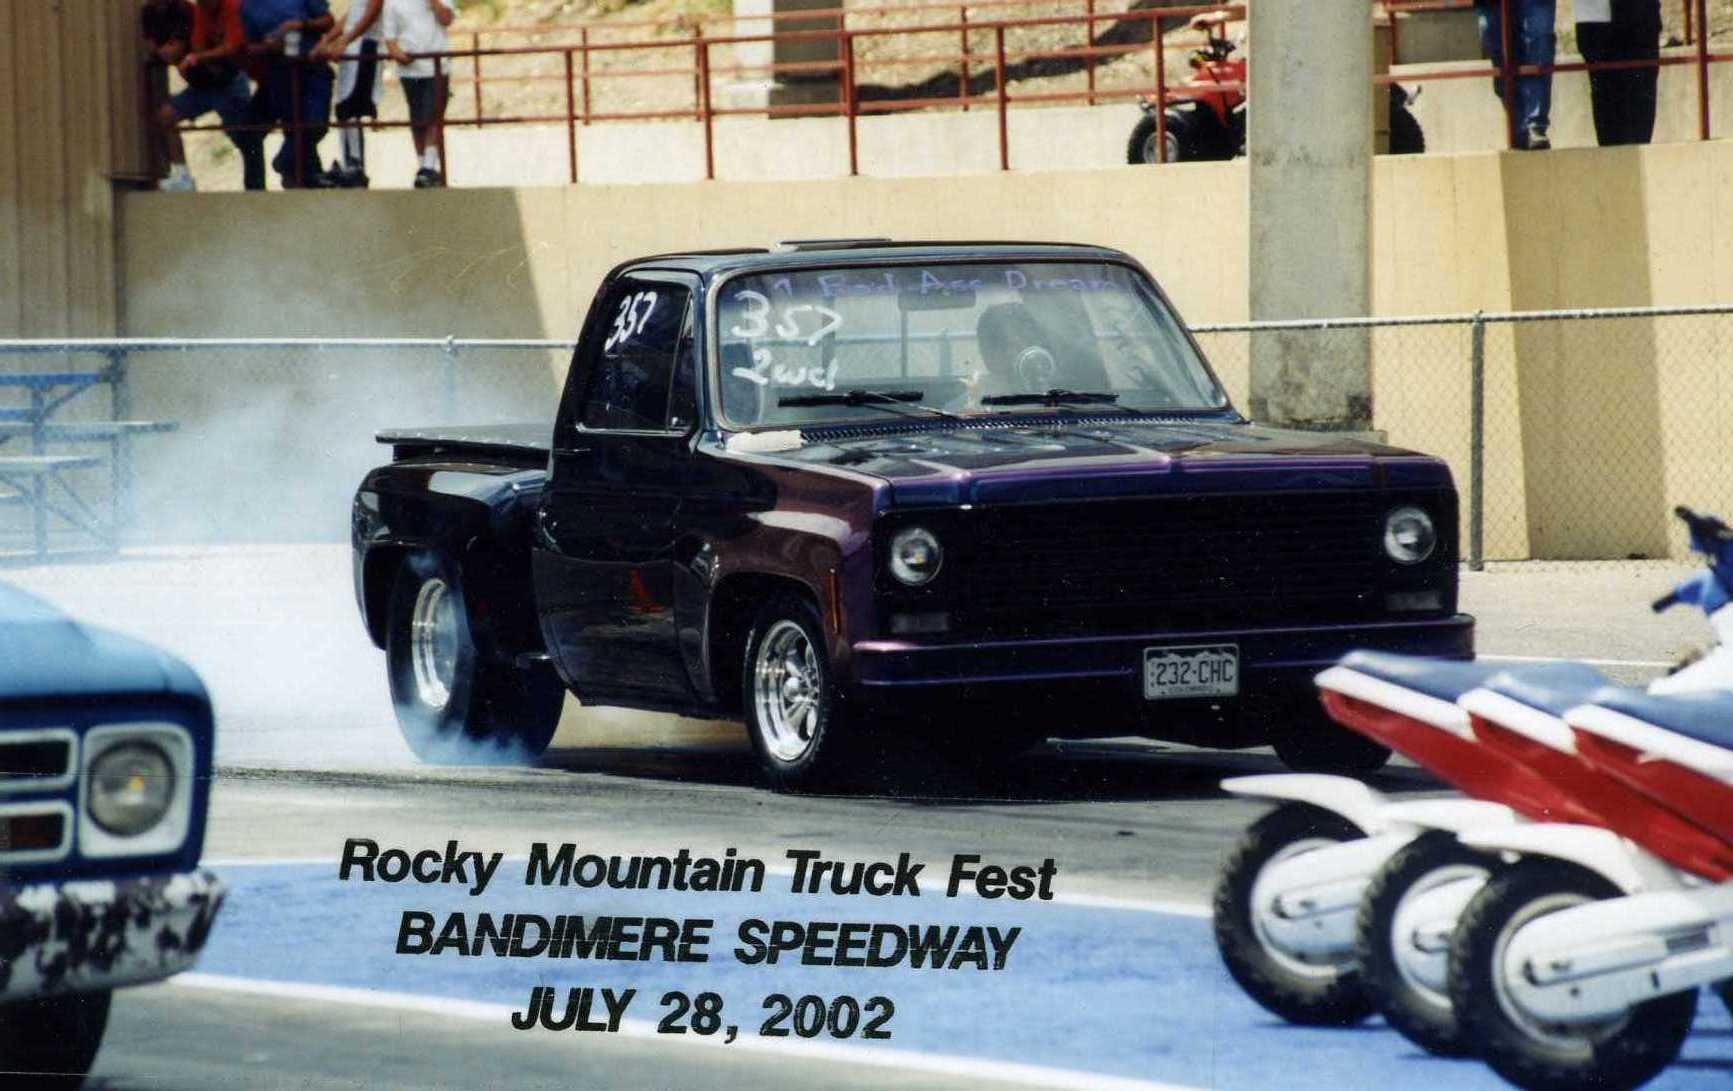 1980 Chevy Pickup 1 2 Ton Step Side Hotrod Hotline Truck Thumbimage